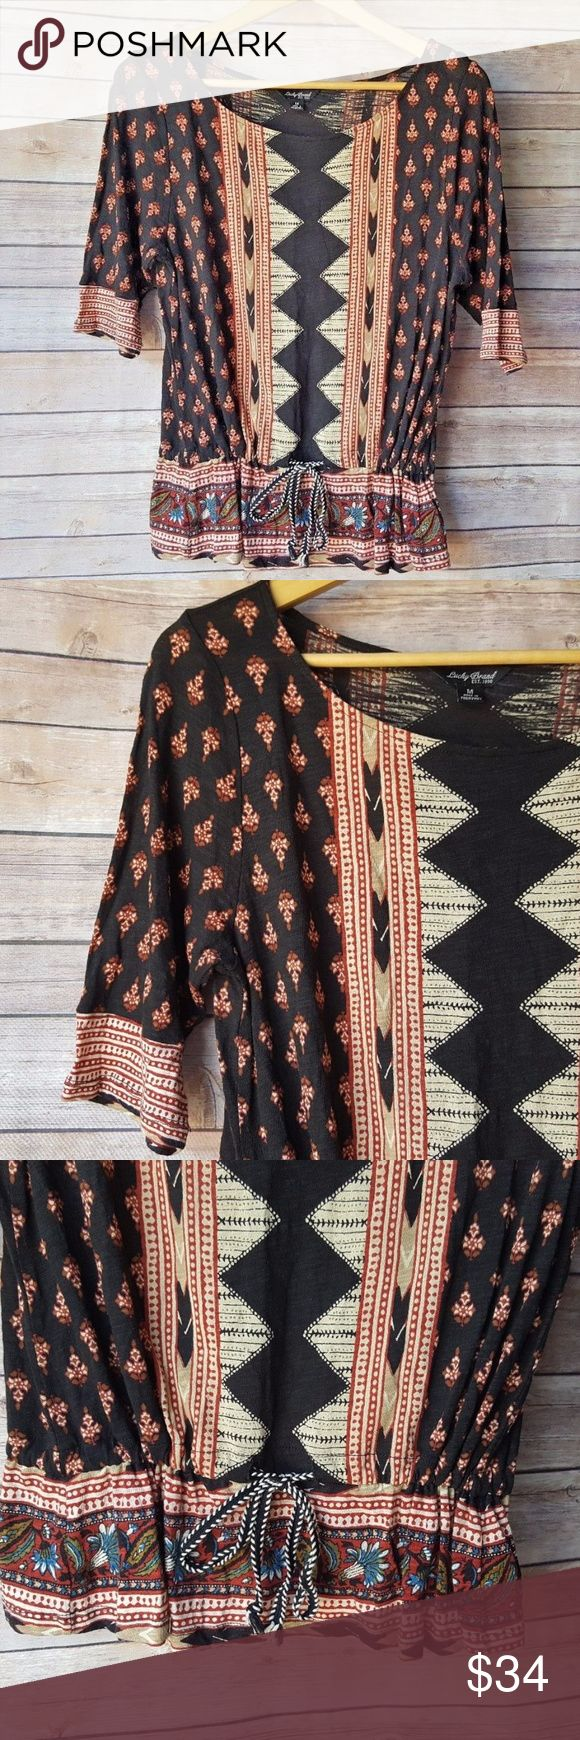 """Lucky Brand Womens Black Boho Aztec Tribal Top Lucky Brand Womens Black Boho Aztec Tribal Floral Cinched 3/4 Sleeve Size Medium   Excellent used condition- no rips, stains, smoke free home. Pit to pit: 18"""" Shoulder to hem: 24"""" Lucky Brand Tops Blouses"""